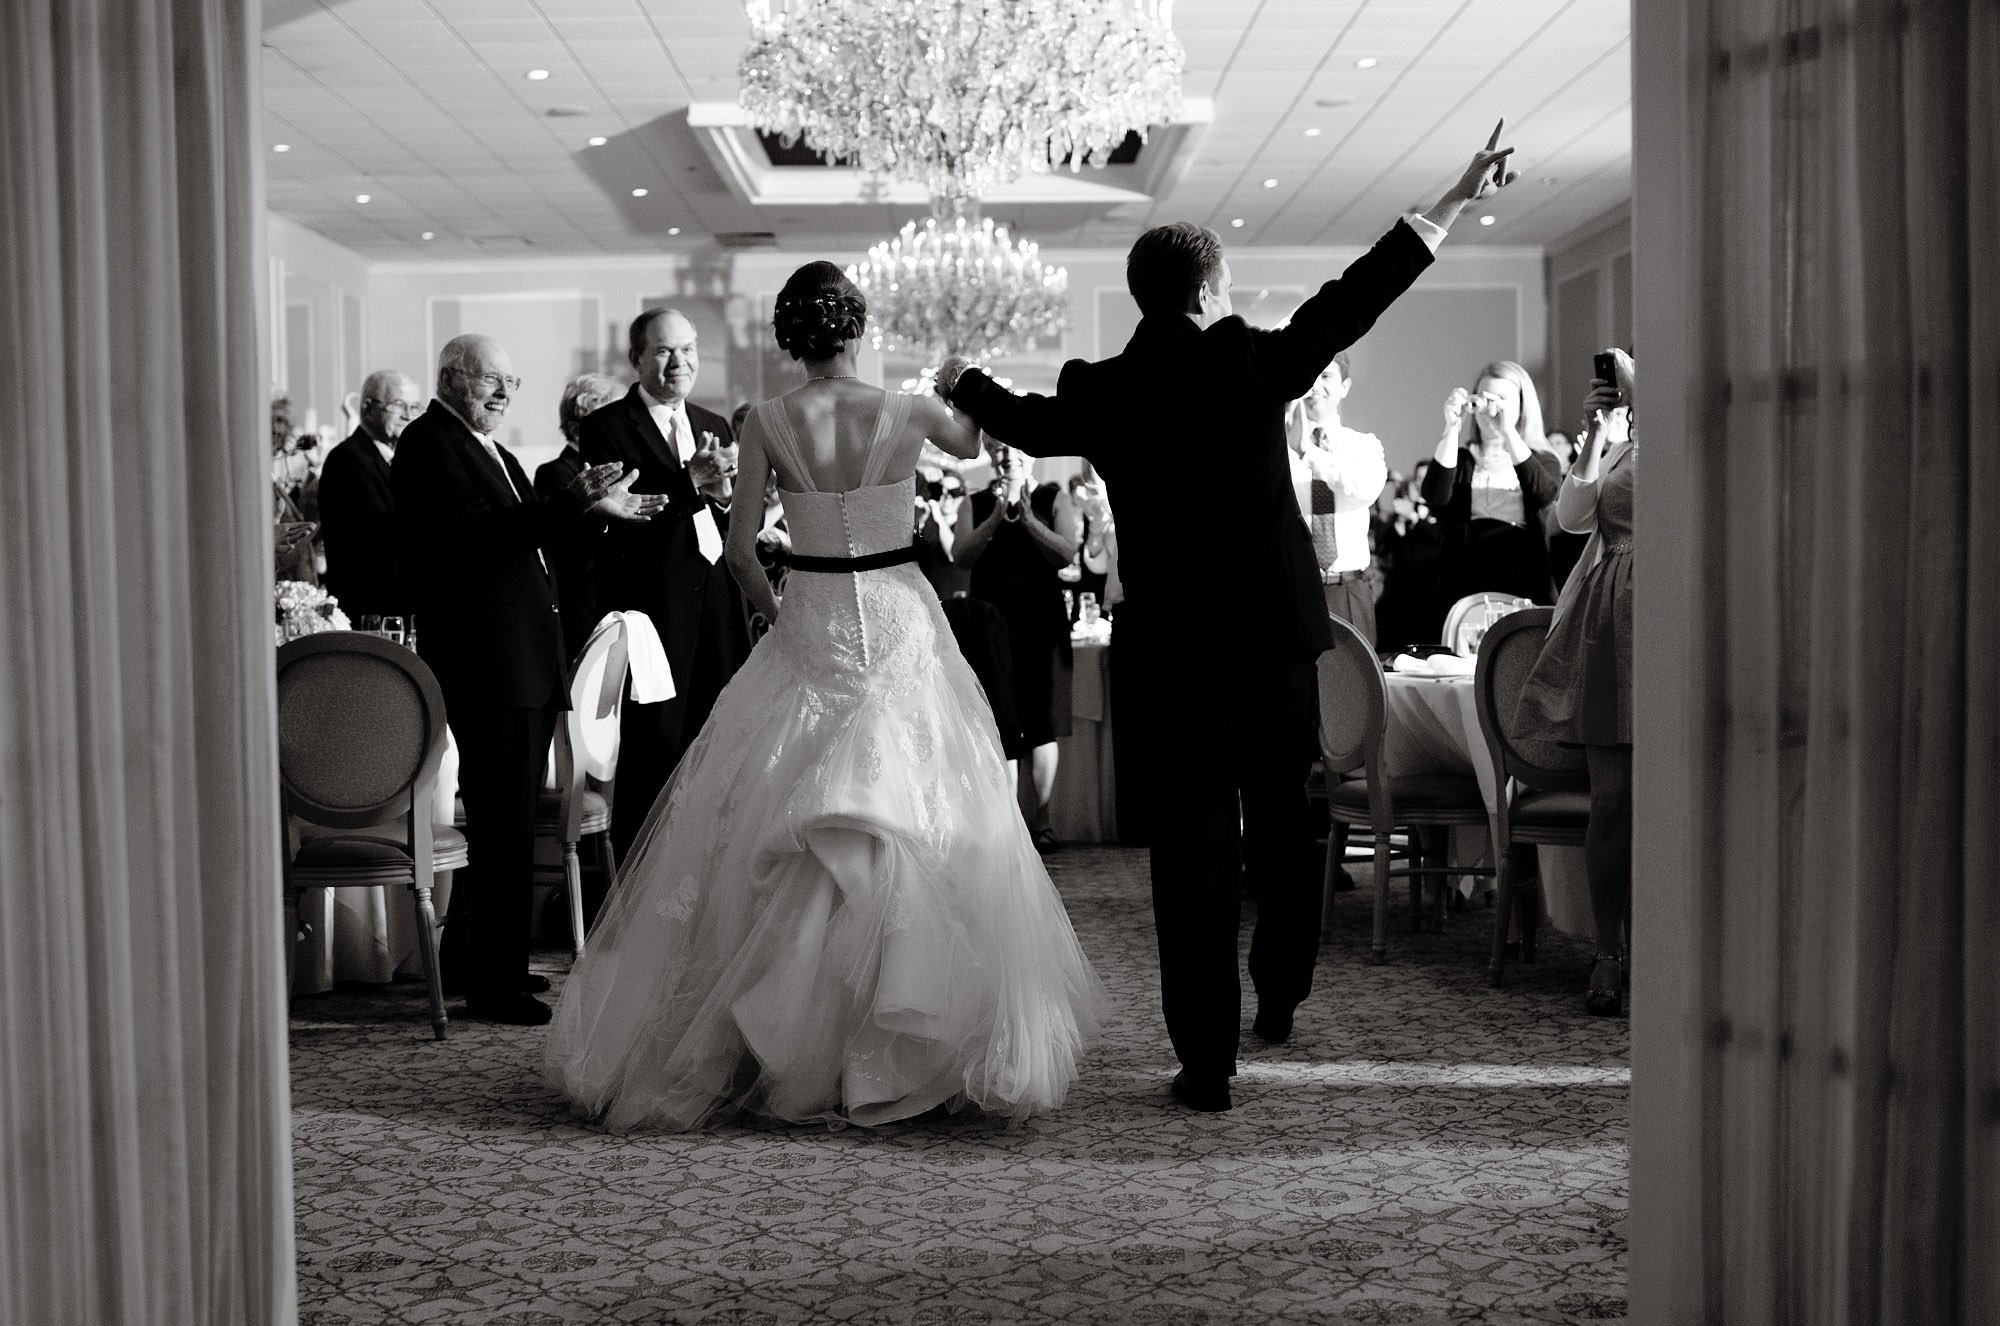 The bride and groom are introduced to the wedding reception at Spring Lake Bath and Tennis Club in Spring Lake, NJ.